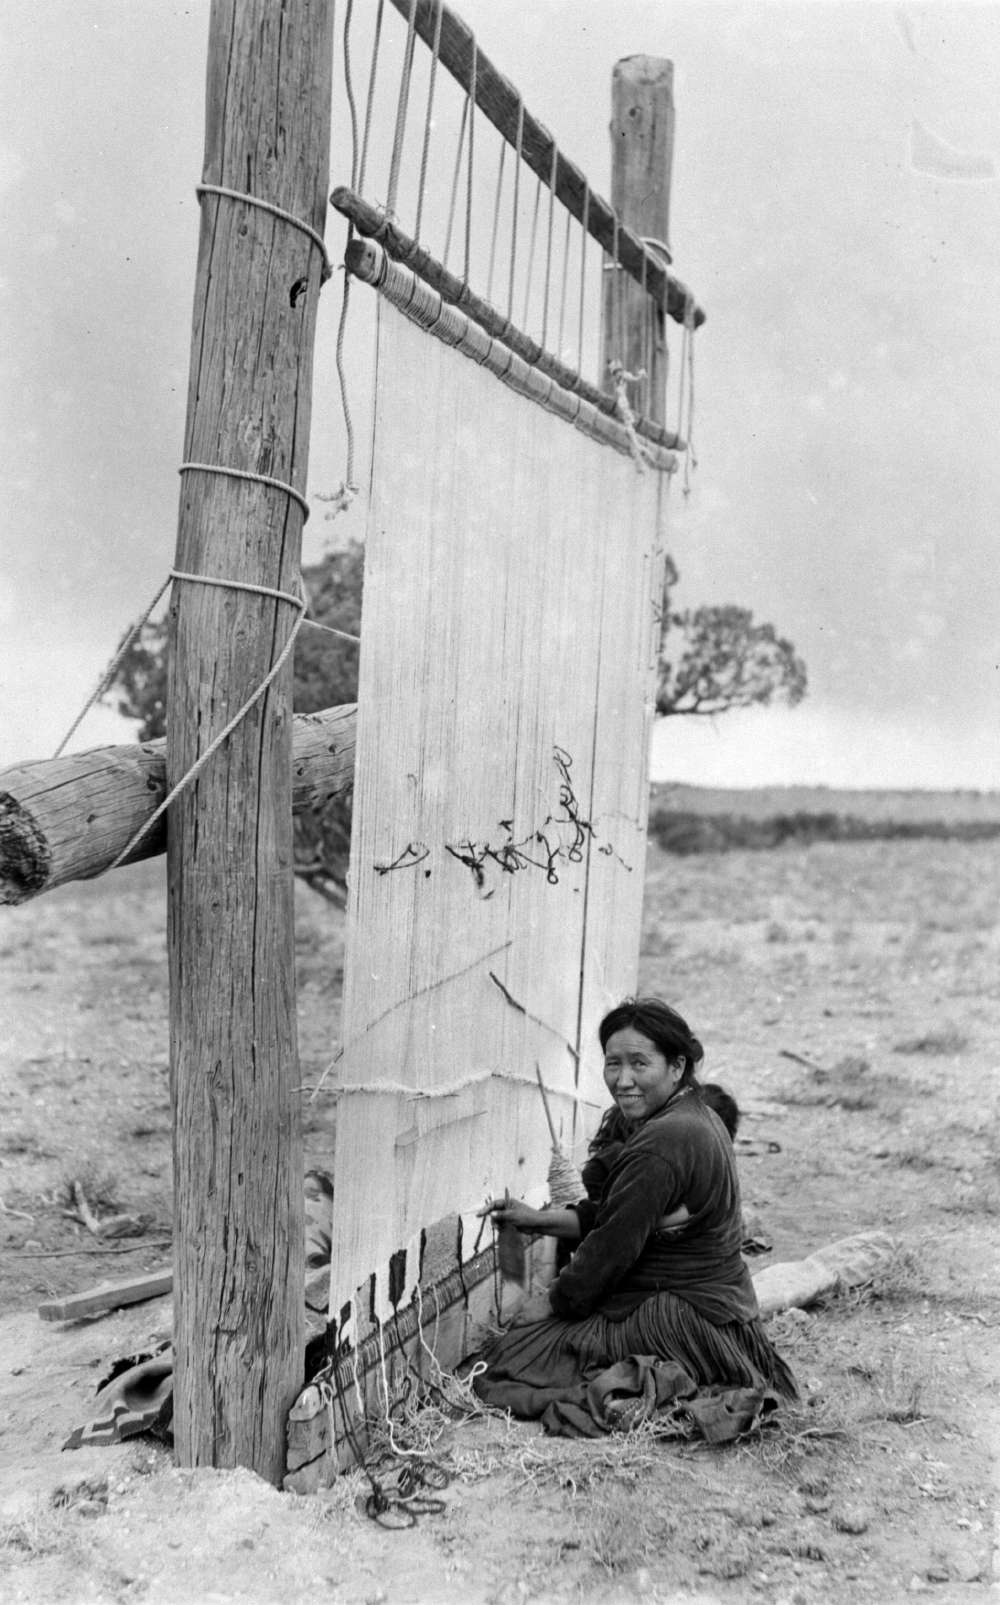 [At Zion National Park, a Navajo woman demonstrates traditional rug weaving techniques, Union Pacific Museum Collection.]     At Zion National Park, a Navajo woman demonstrates traditional rug weaving techniques